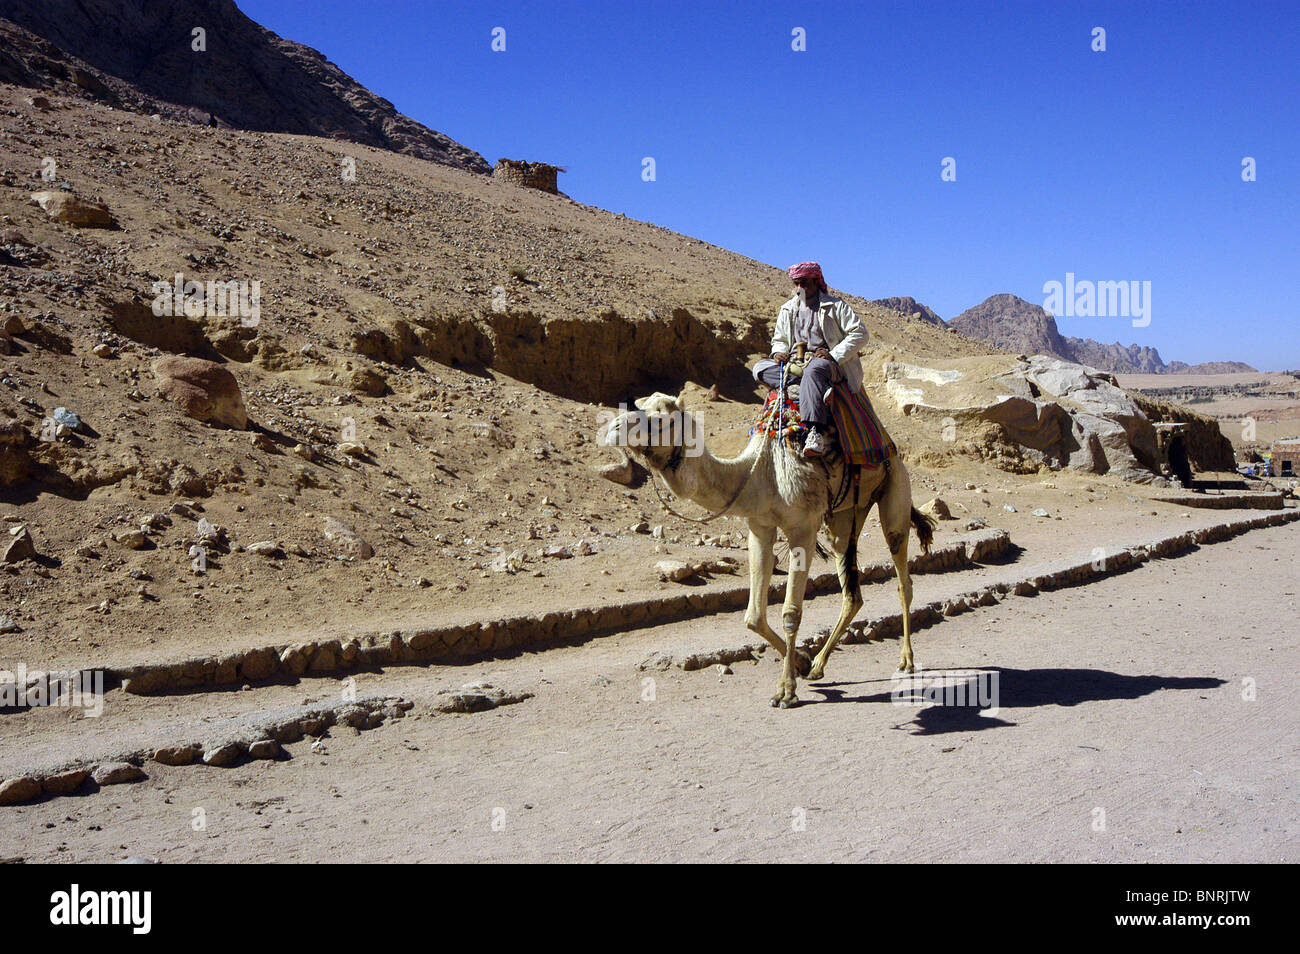 The ship of the desert, A Bedouin and his camel on the desert road close to The Monastery of St Catherine in Sinai. Stock Photo